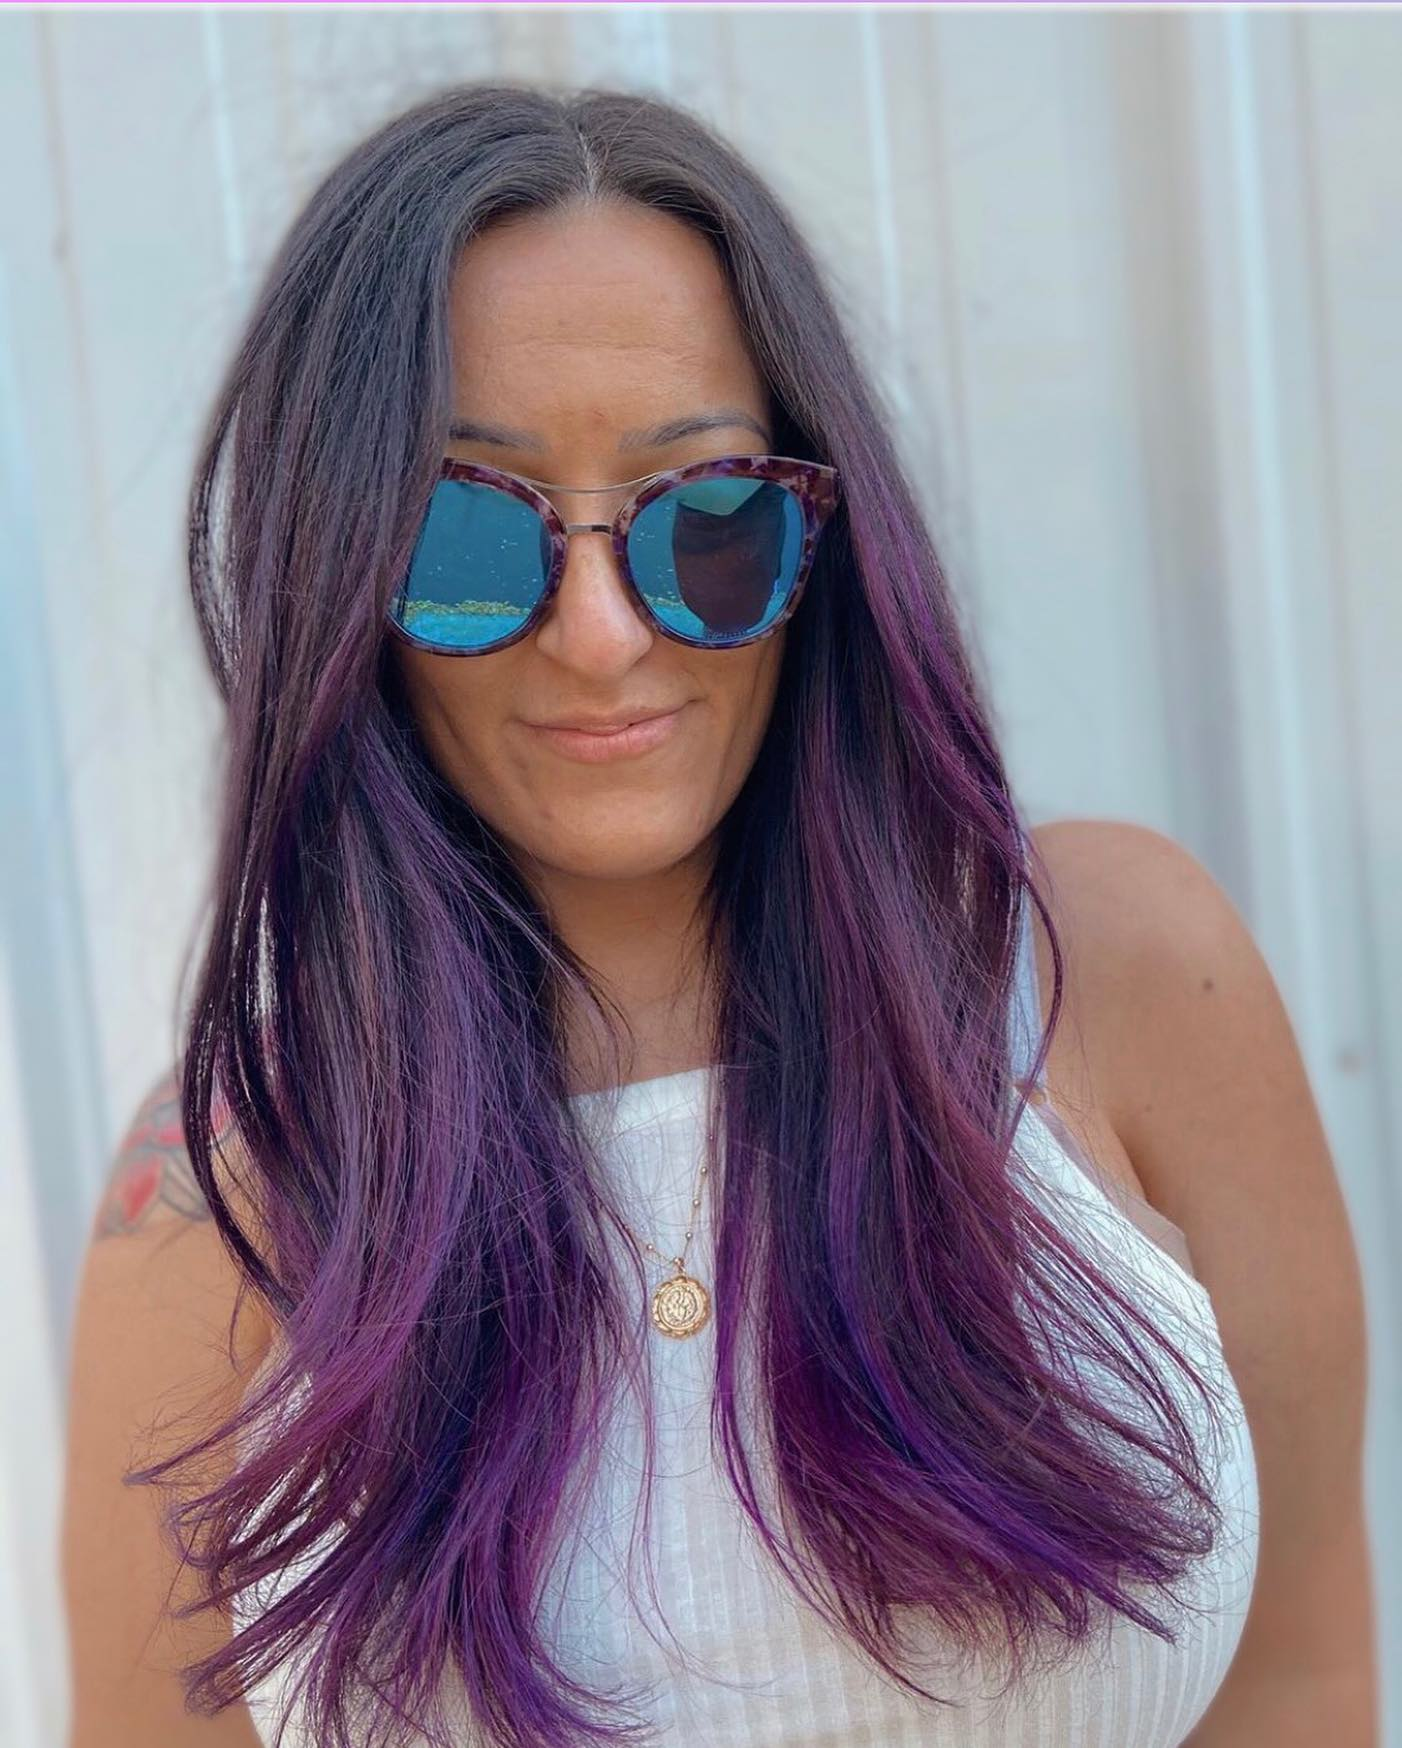 woman with purple highlights in hair